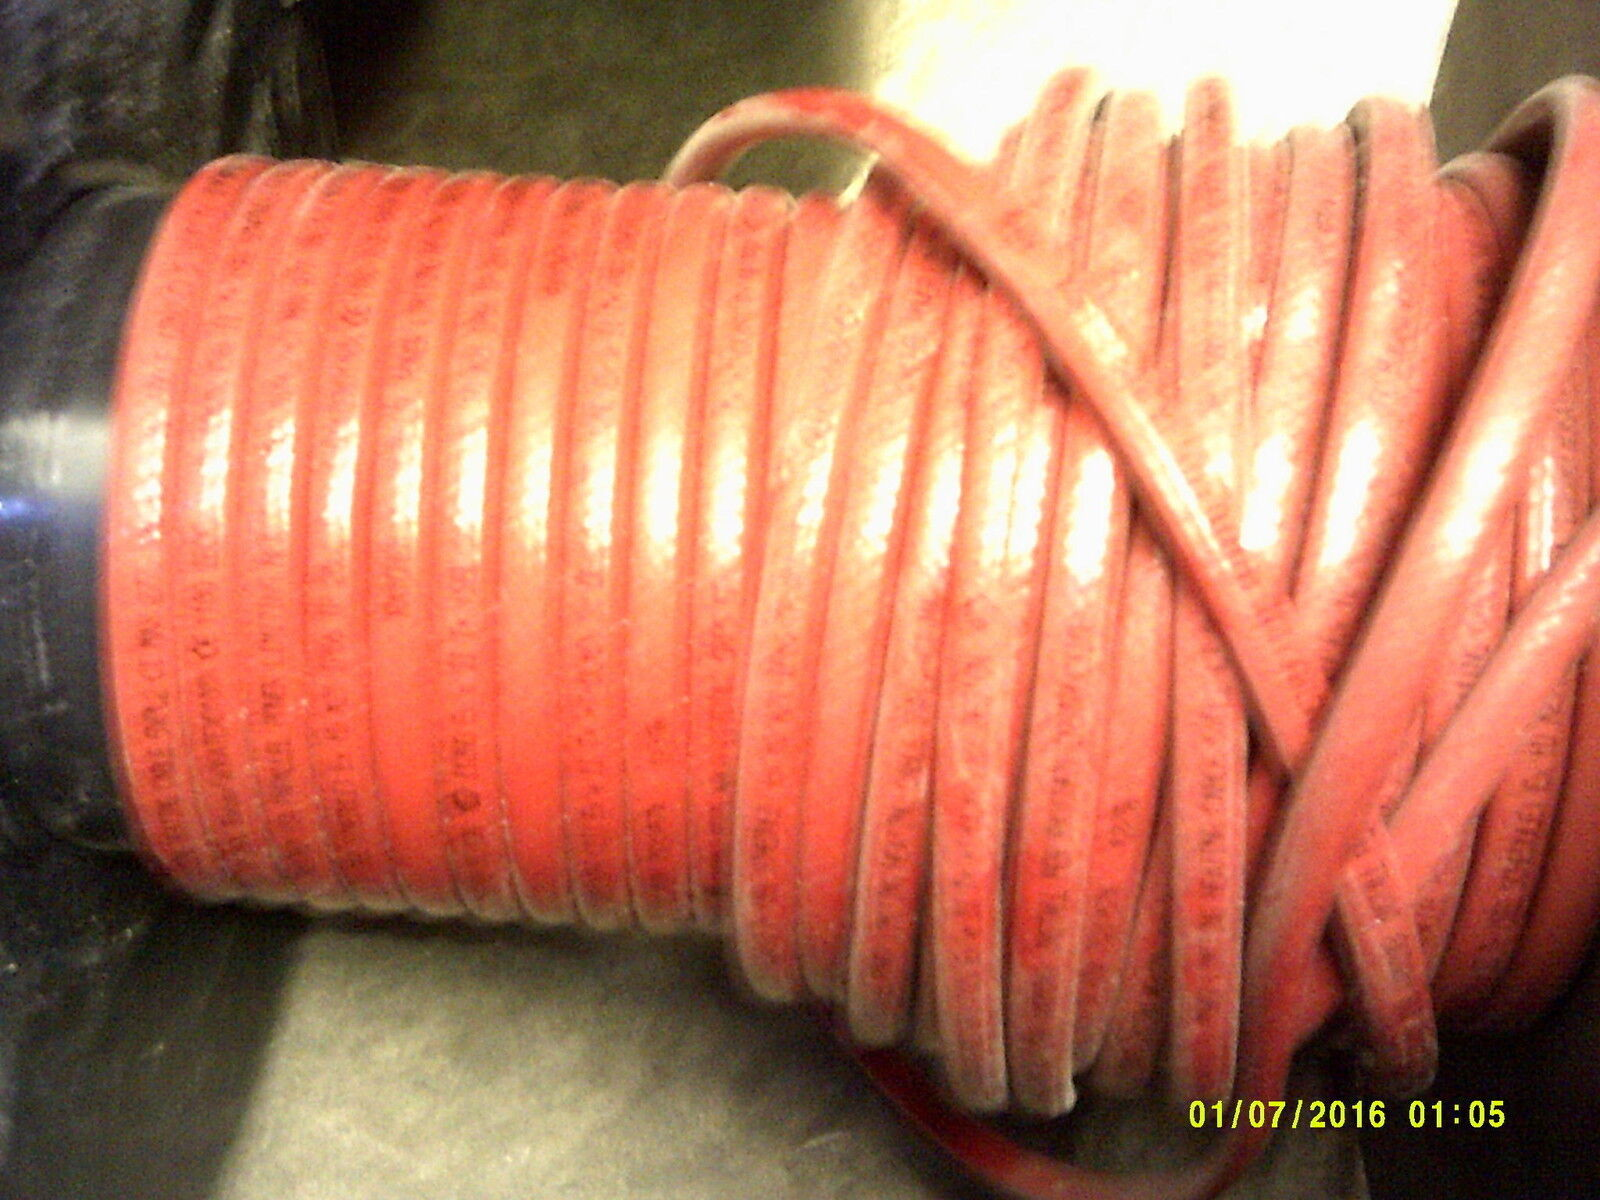 Raychem 5vpl2 Ct Parallel Power Limiting Heating Cable 755 Ft Ebay Nichrome Wiring In